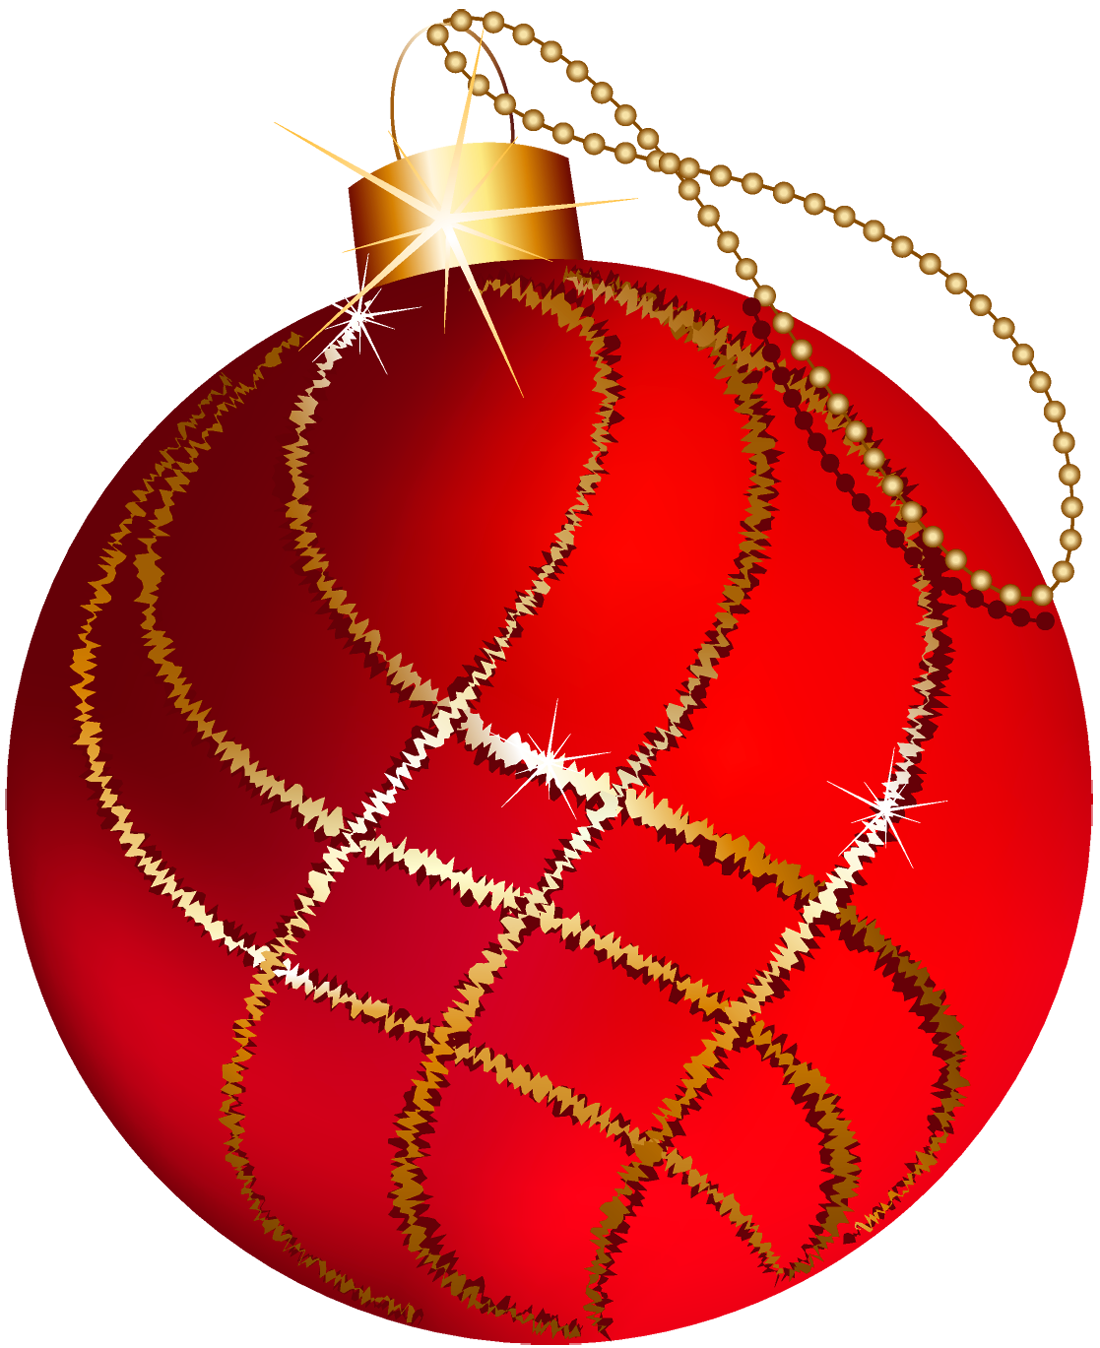 Christmas ornaments png transparent. Image mart